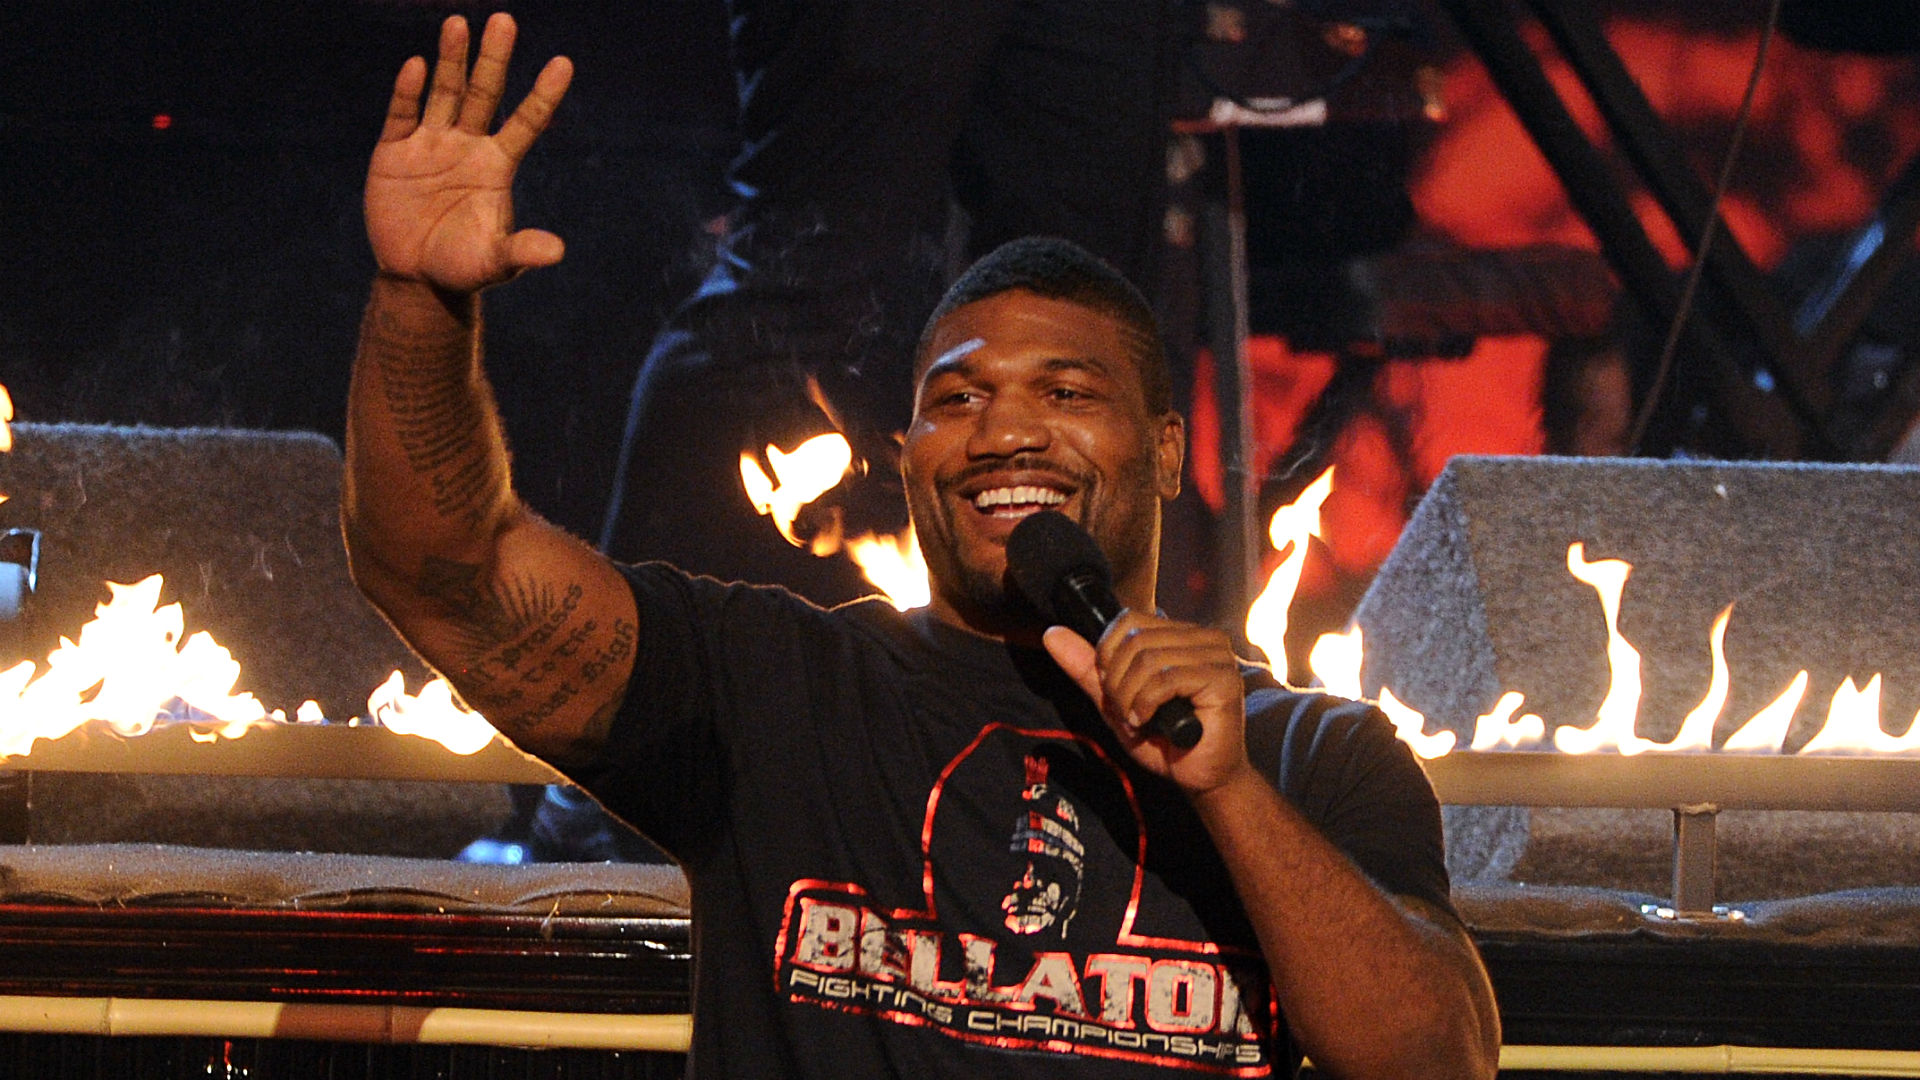 quinton-jackson-GettyImages_170214005-FTR.jpg